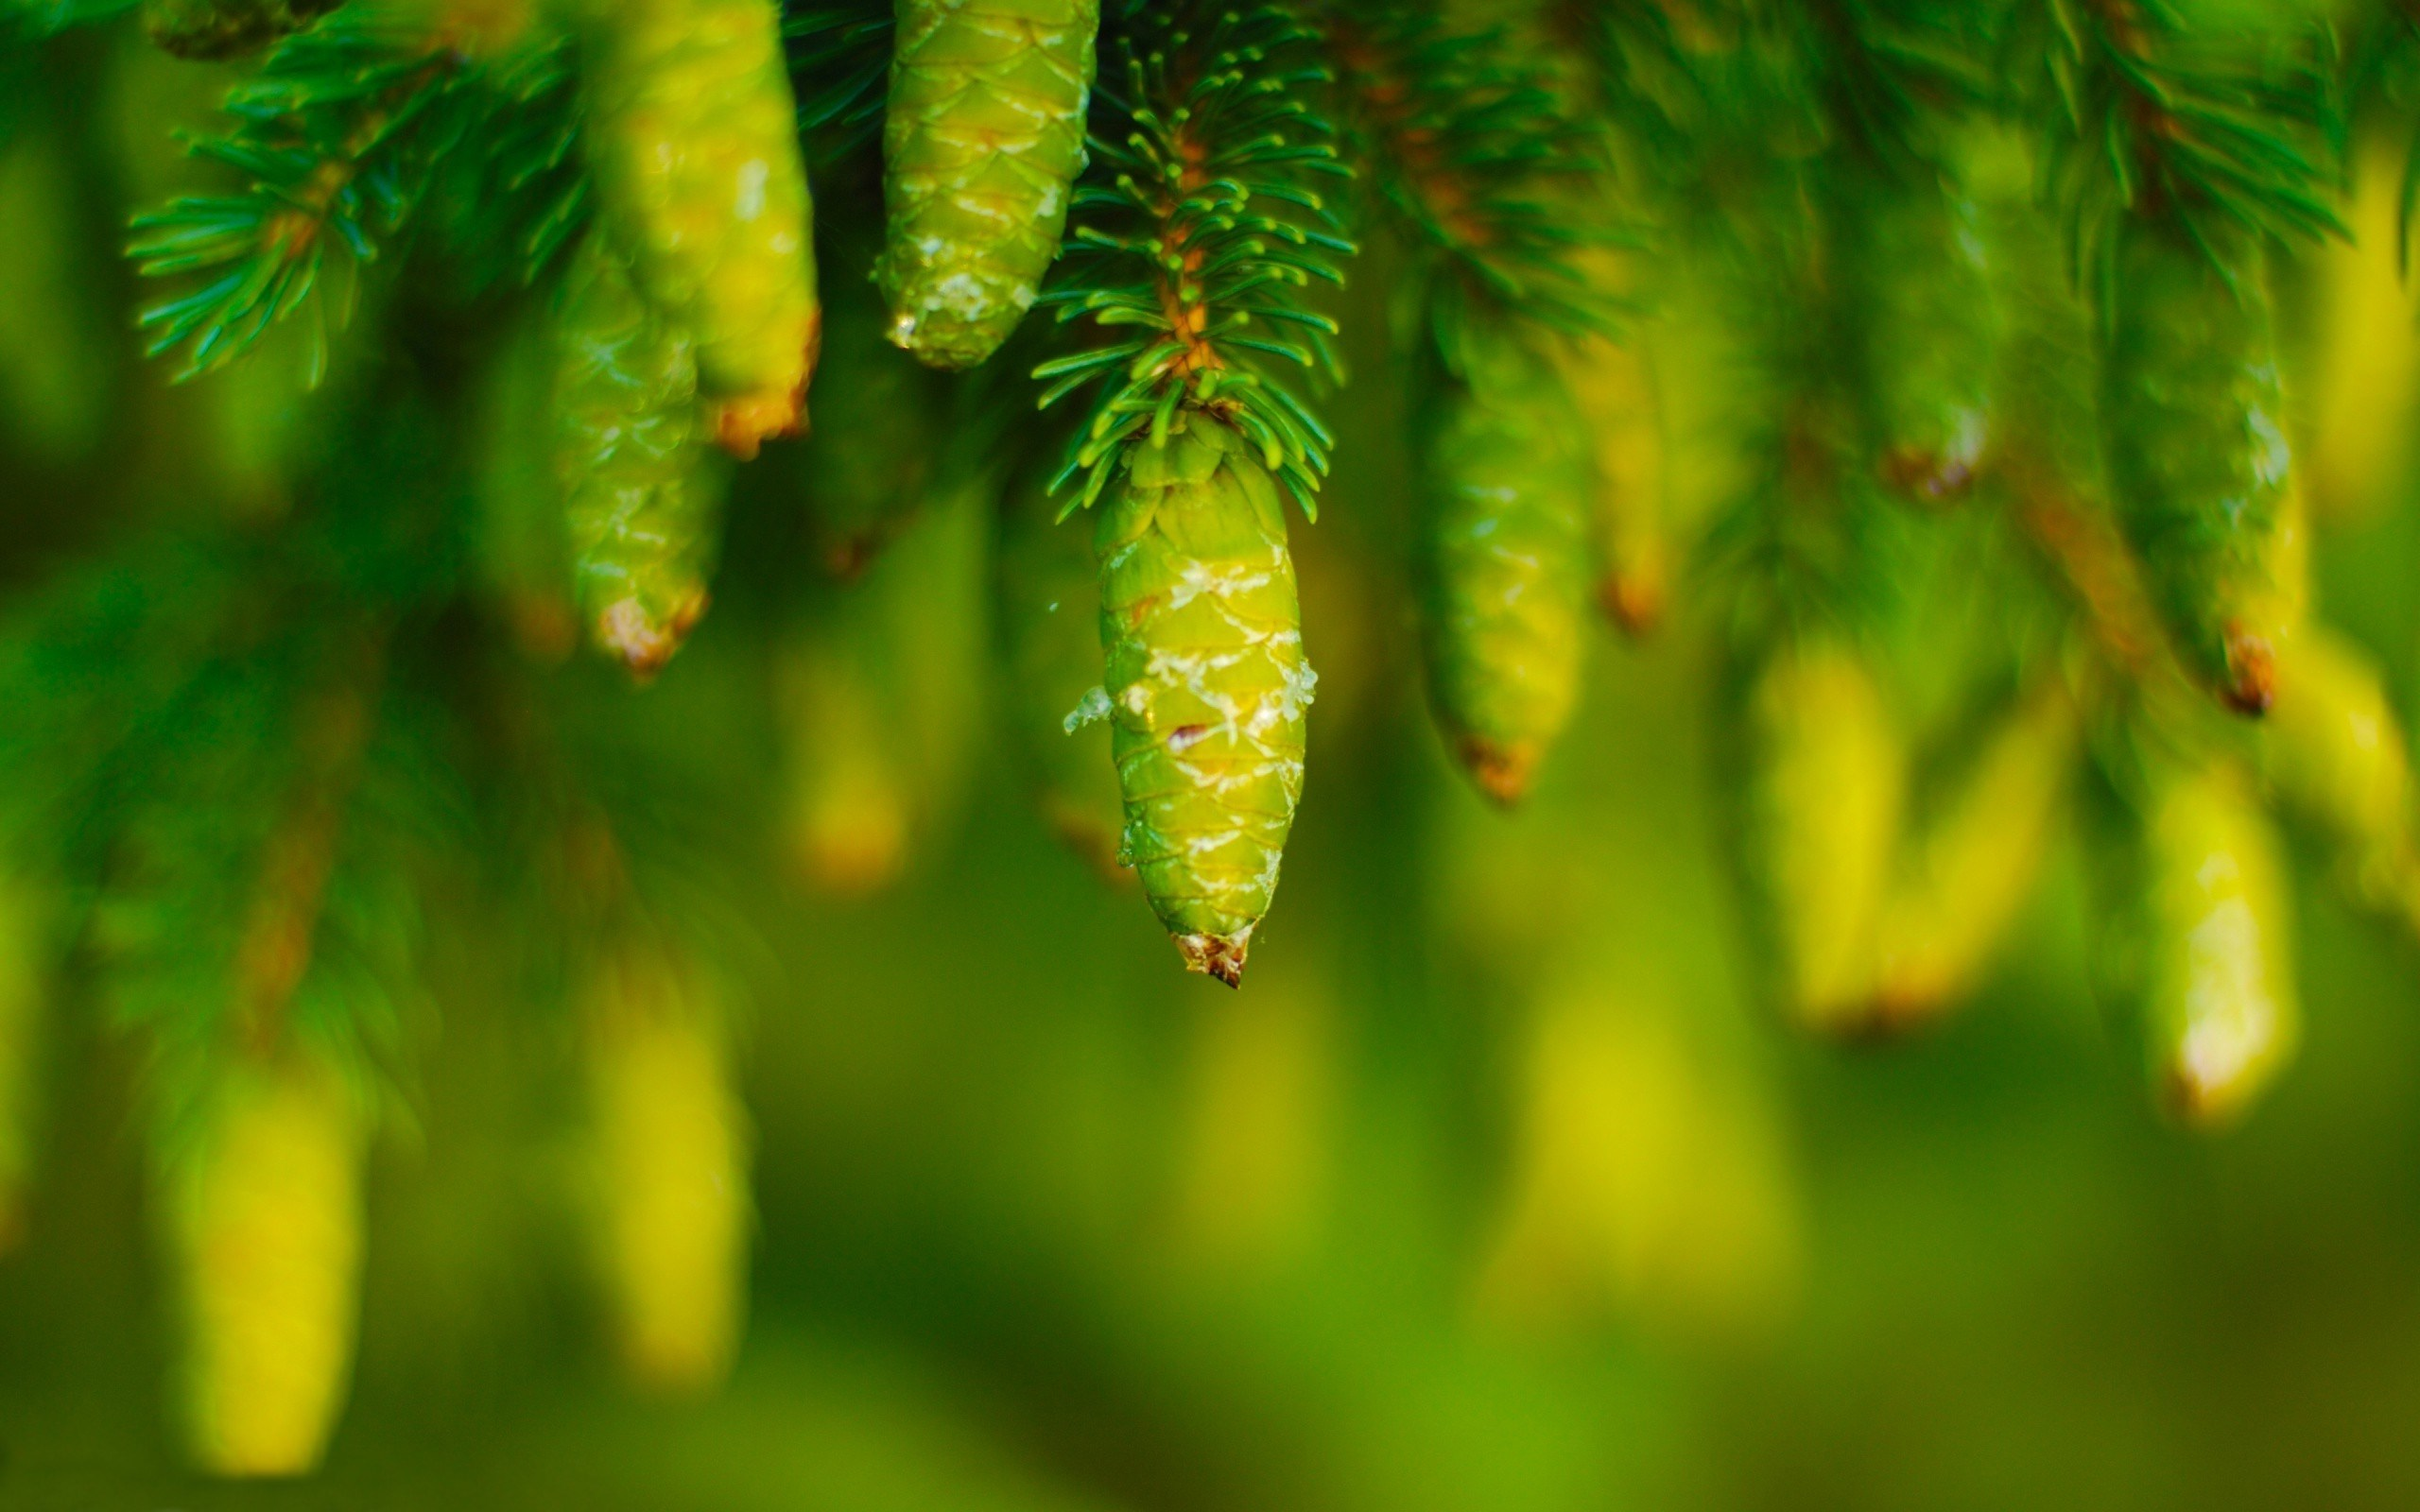 Awesome Green Nature Wallpaper: Conifers Tree Pin Green Cones Nature Hd Wallpaper 2560x1600px